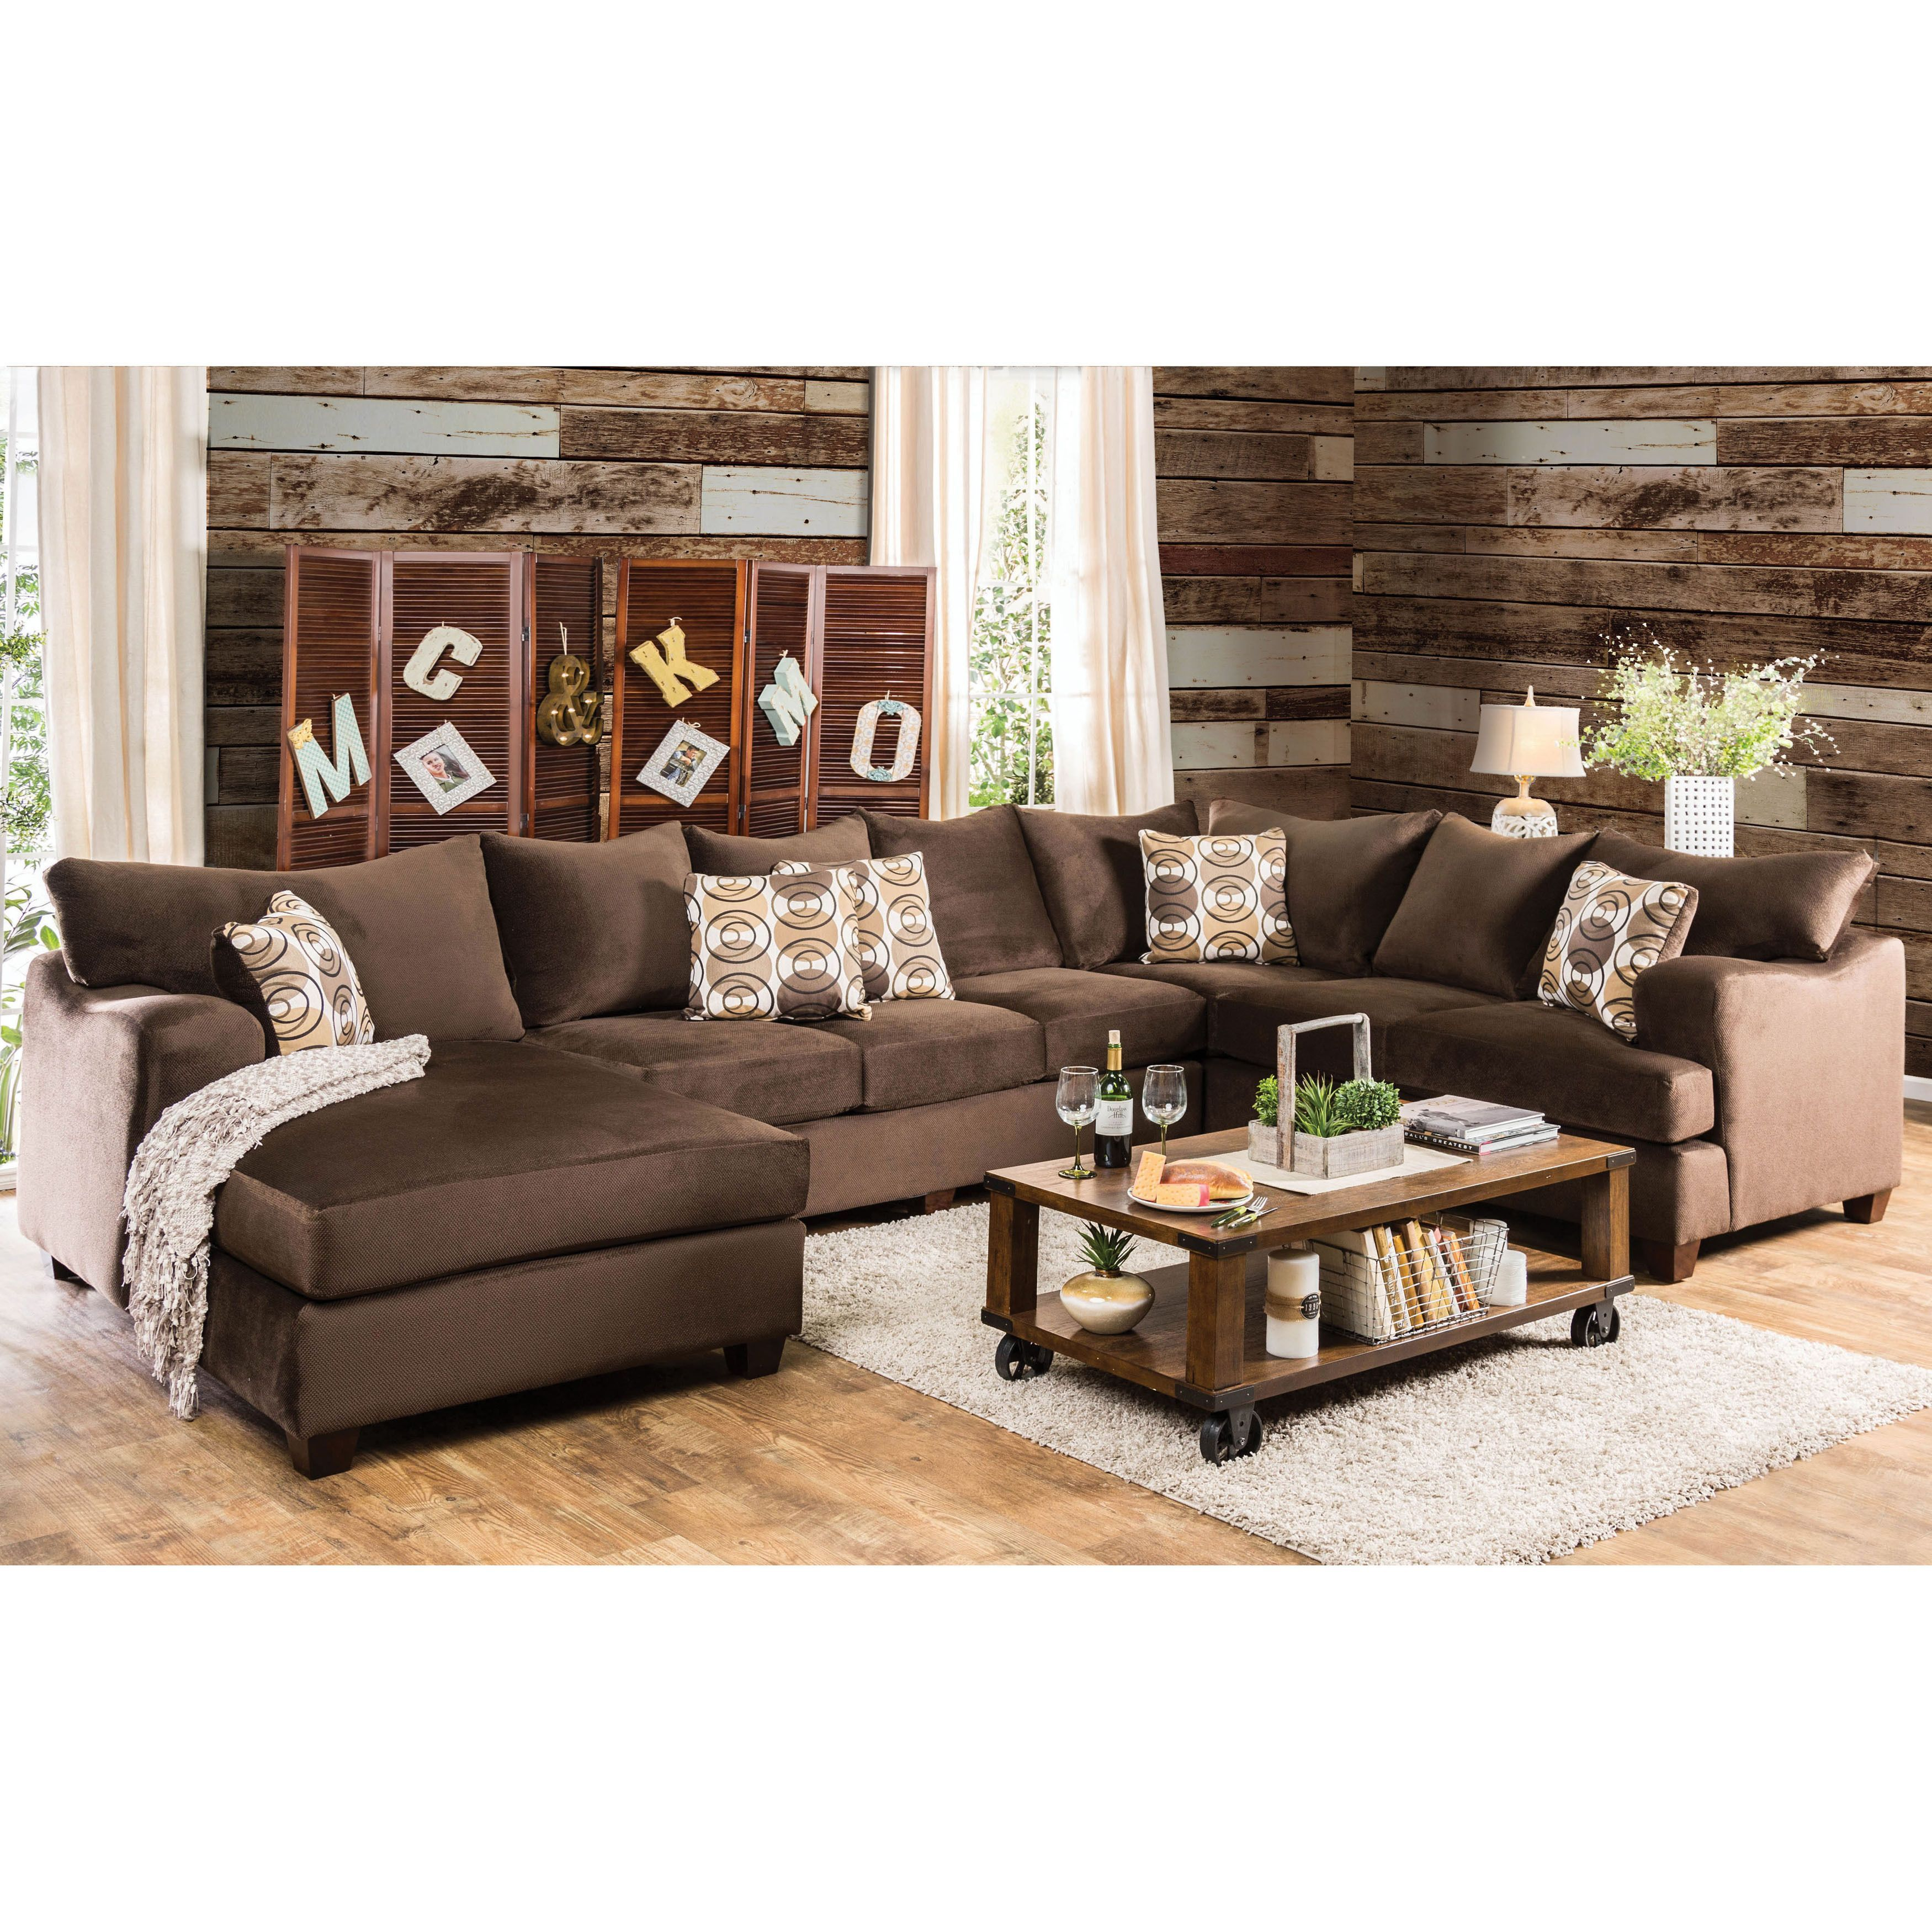 Furniture of America Horm Contemporary Brown Fabric 4-piece ...